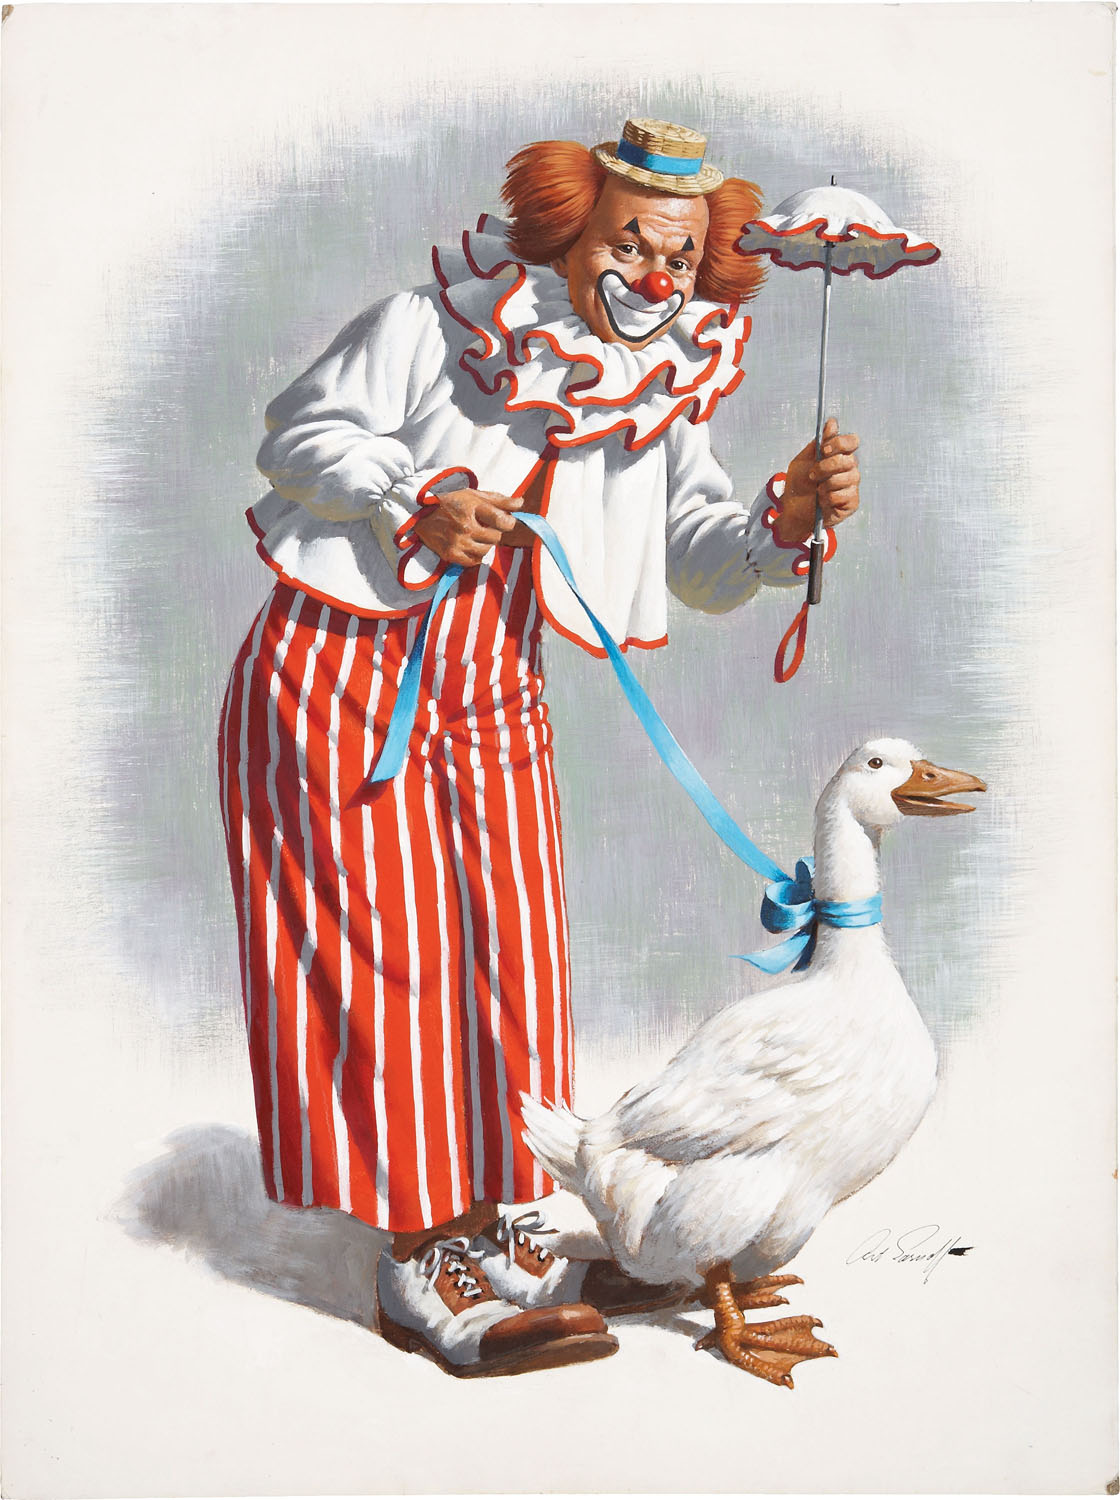 ARTHUR SARNOFF - CLOWN WITH GOOSE ILLUSTRATION ORIGINAL ART